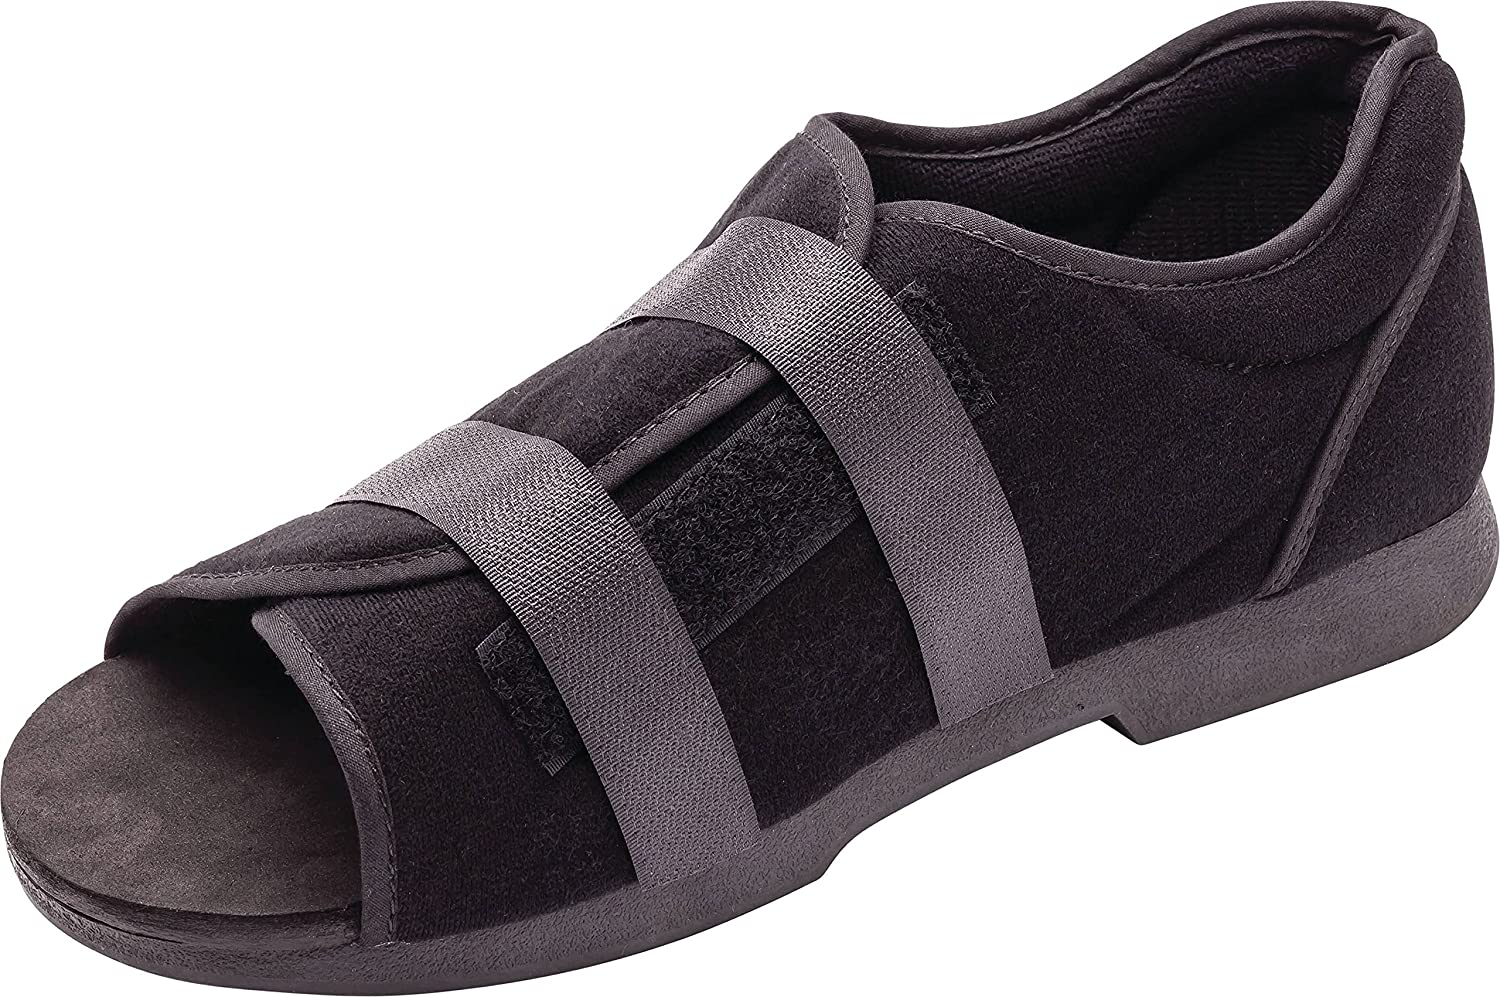 Ossur Soft Tucson Mall Top Post-op Shoe for Post Operation Popular product Men B and Women